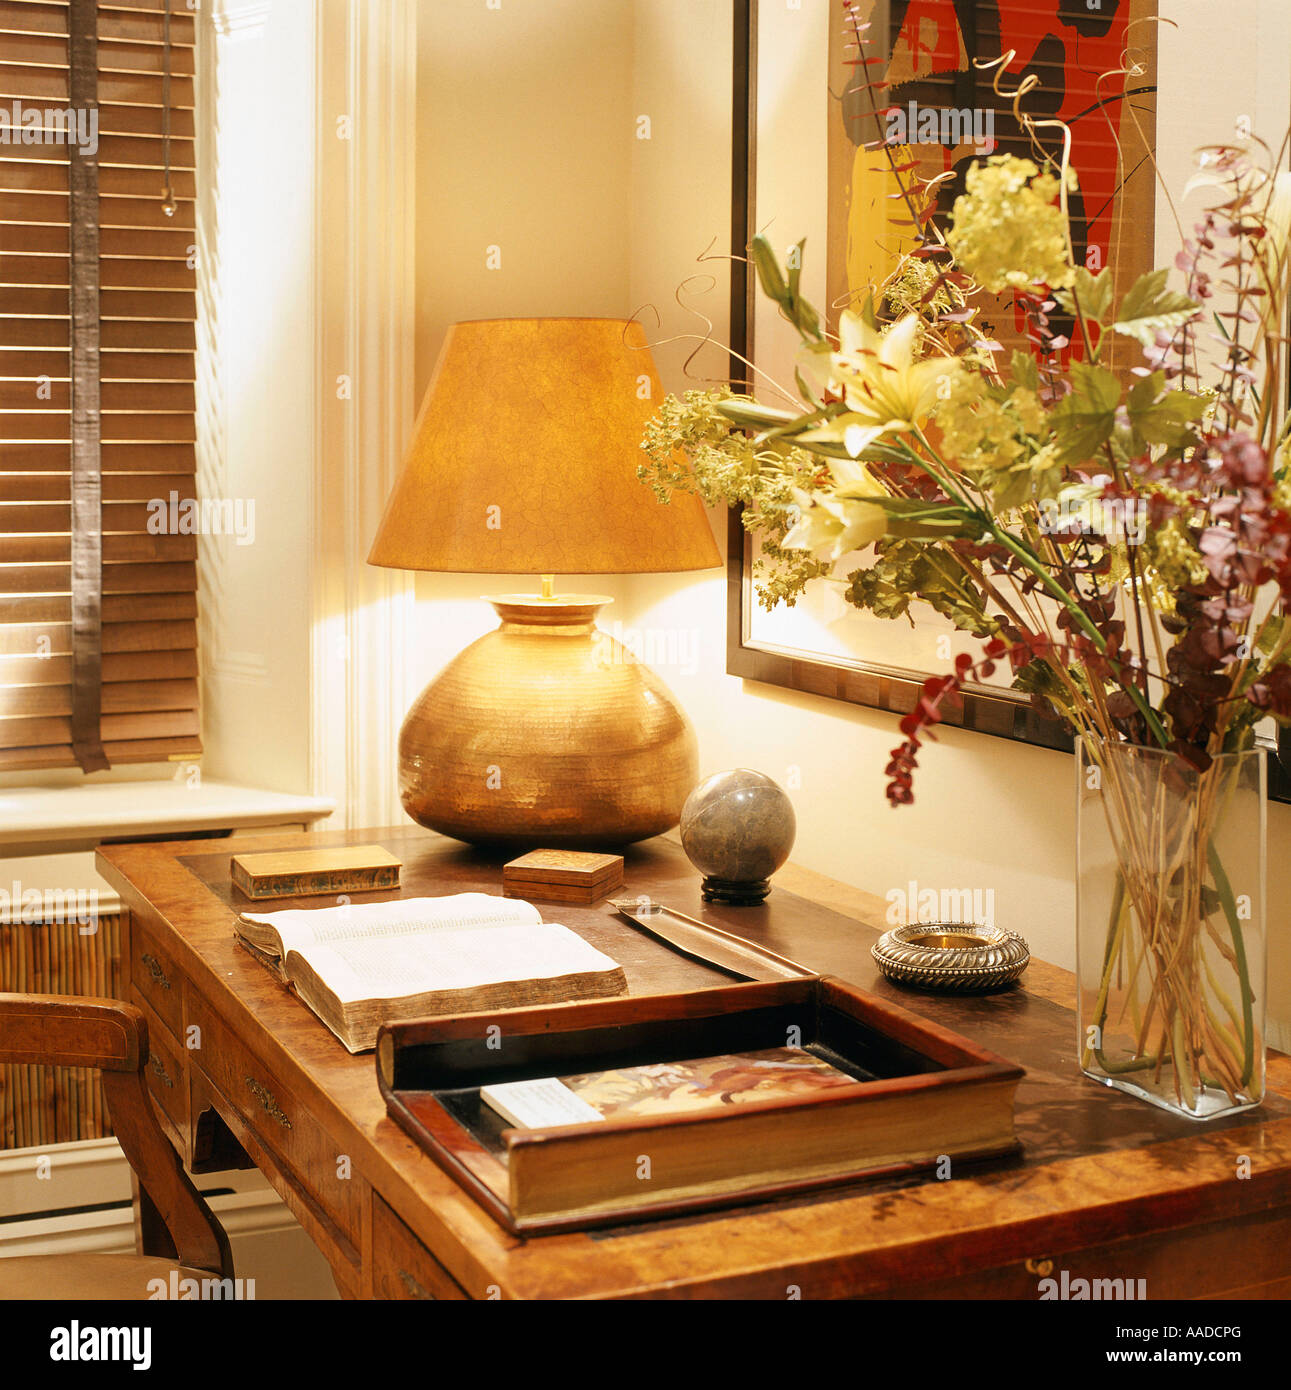 Gold lit lamp and flower arrangement on desk with open book - Stock Image